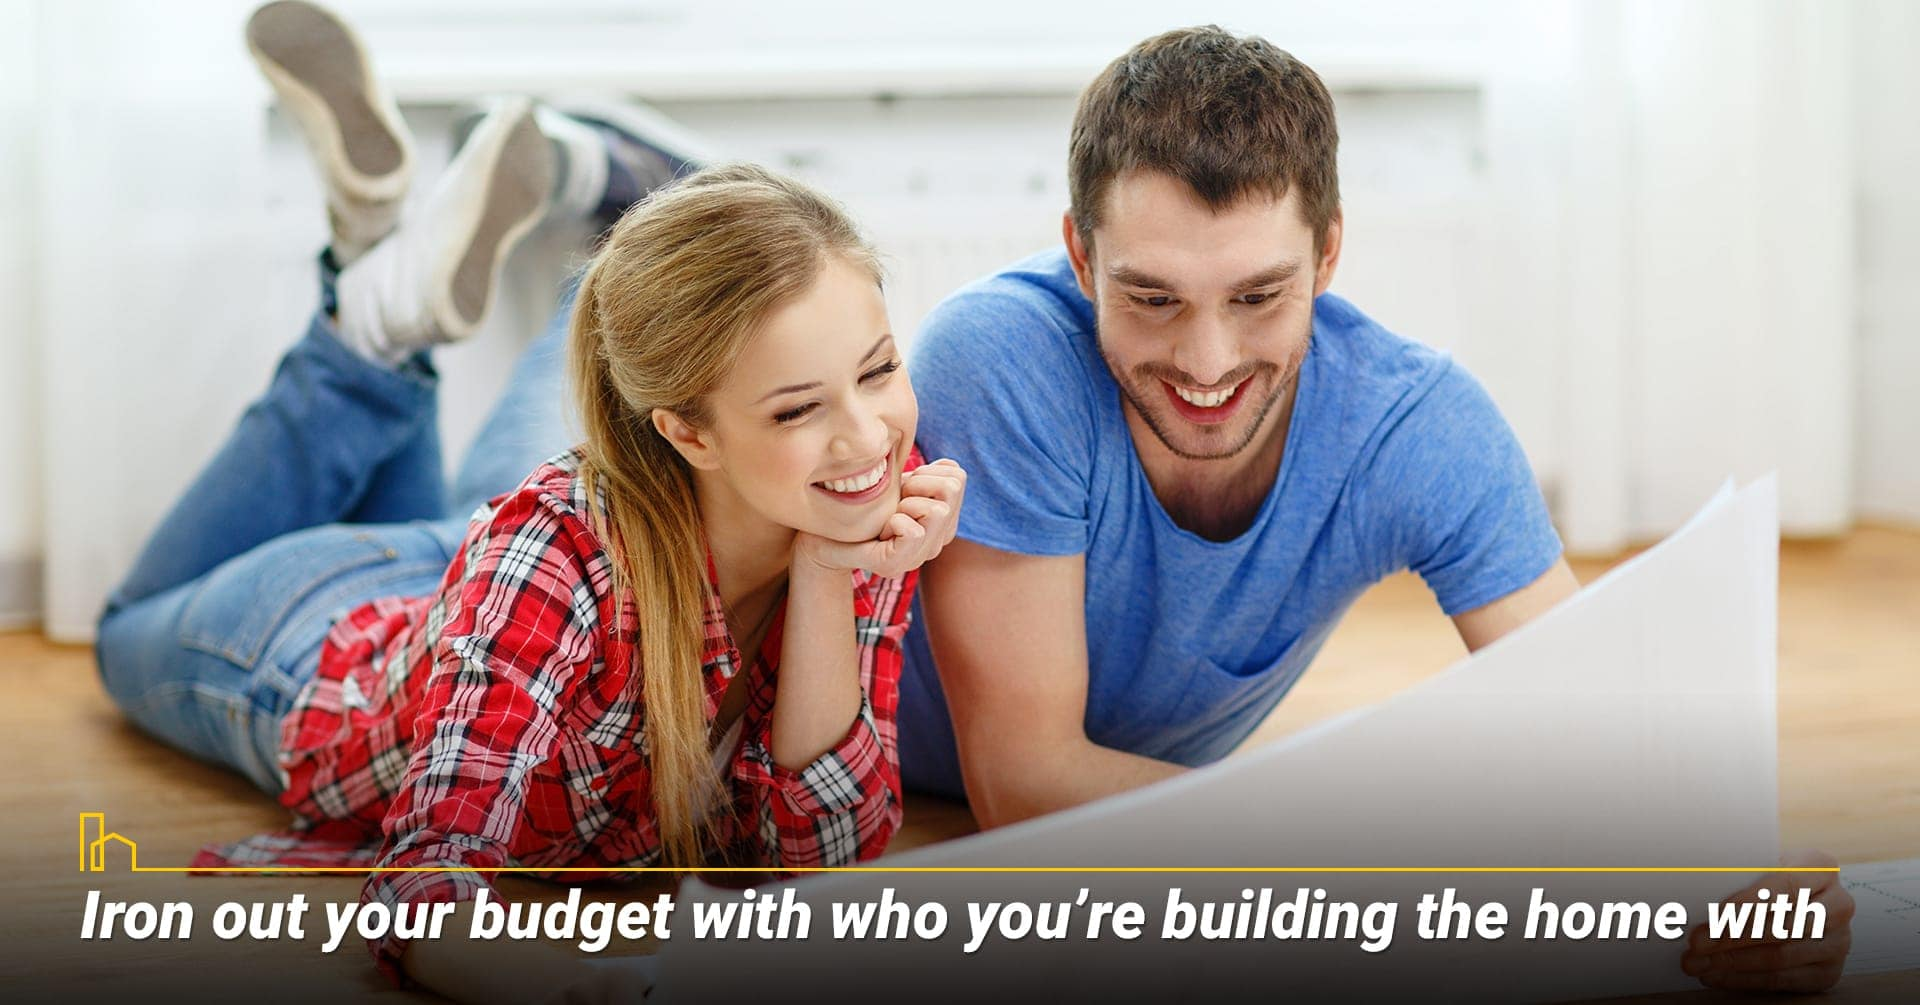 Iron out your budget, start by reviewing your budget